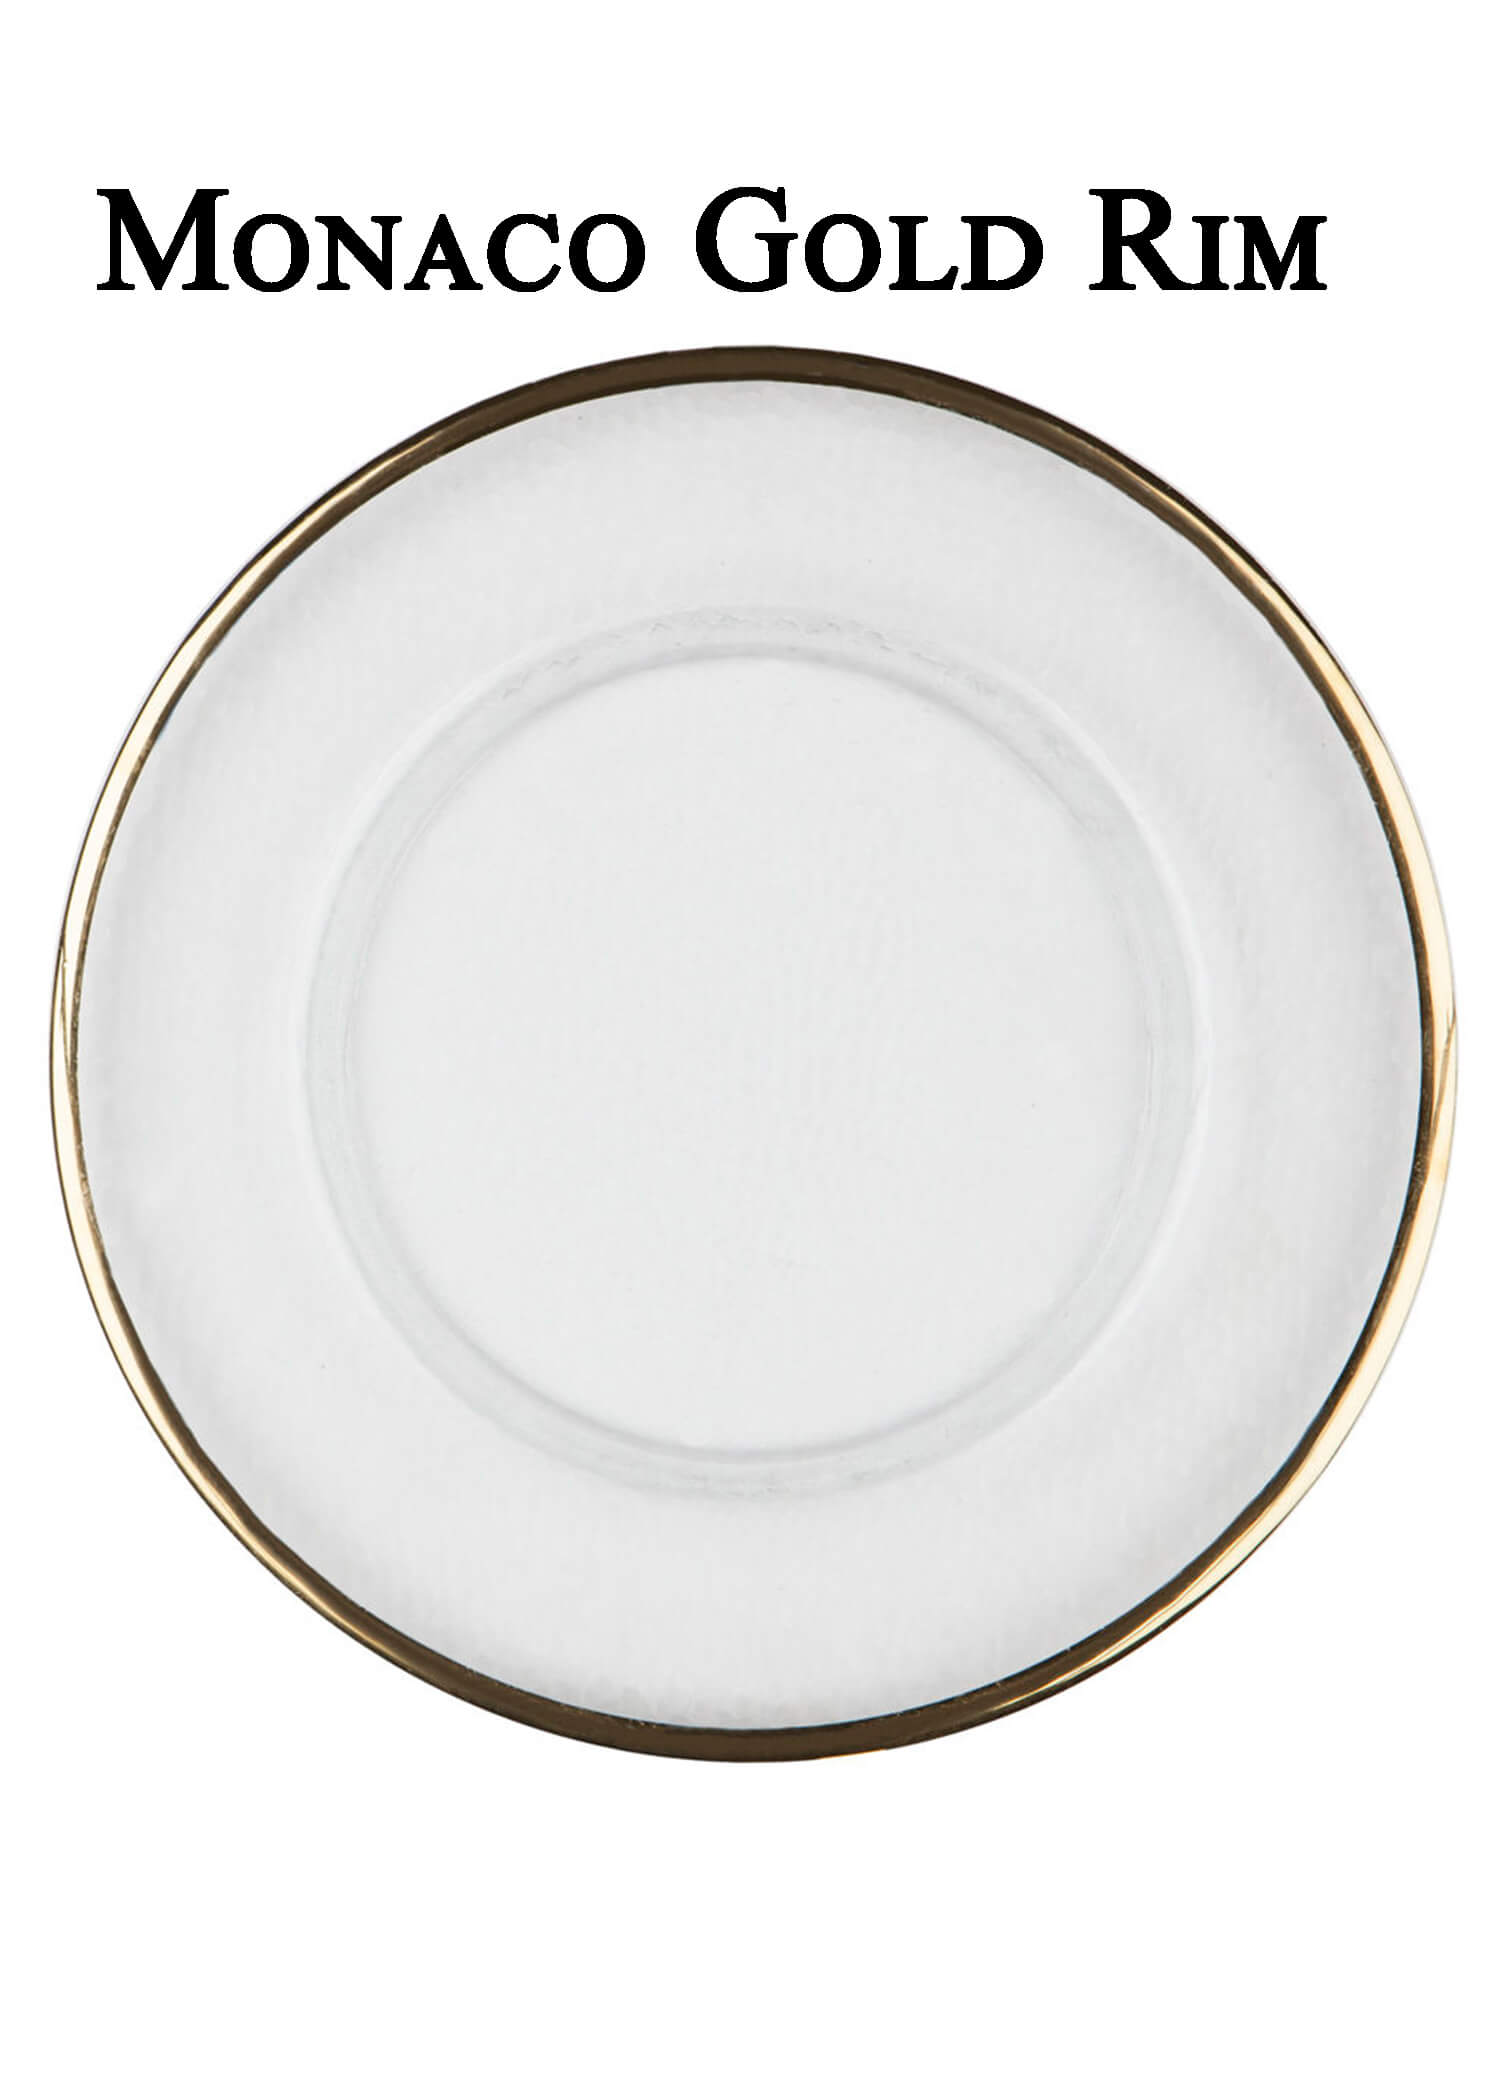 Charger Plates Different Look Charger Plates Wholesale